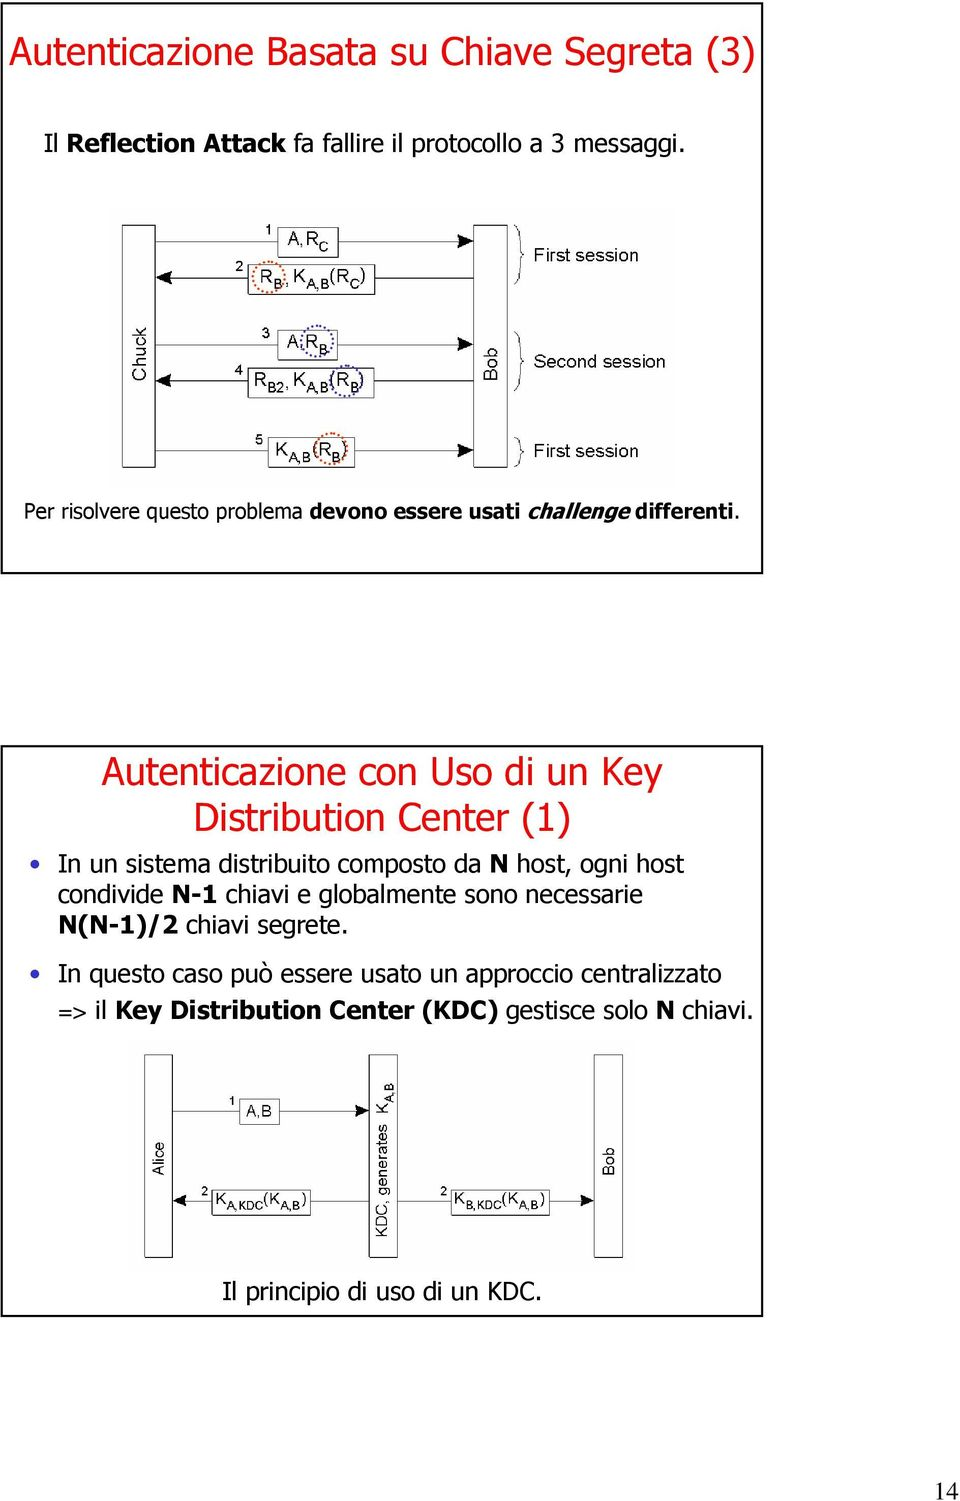 Autenticazione con Uso di un Key Distribution Center (1) In un sistema distribuito composto da N host, ogni host condivide N-1